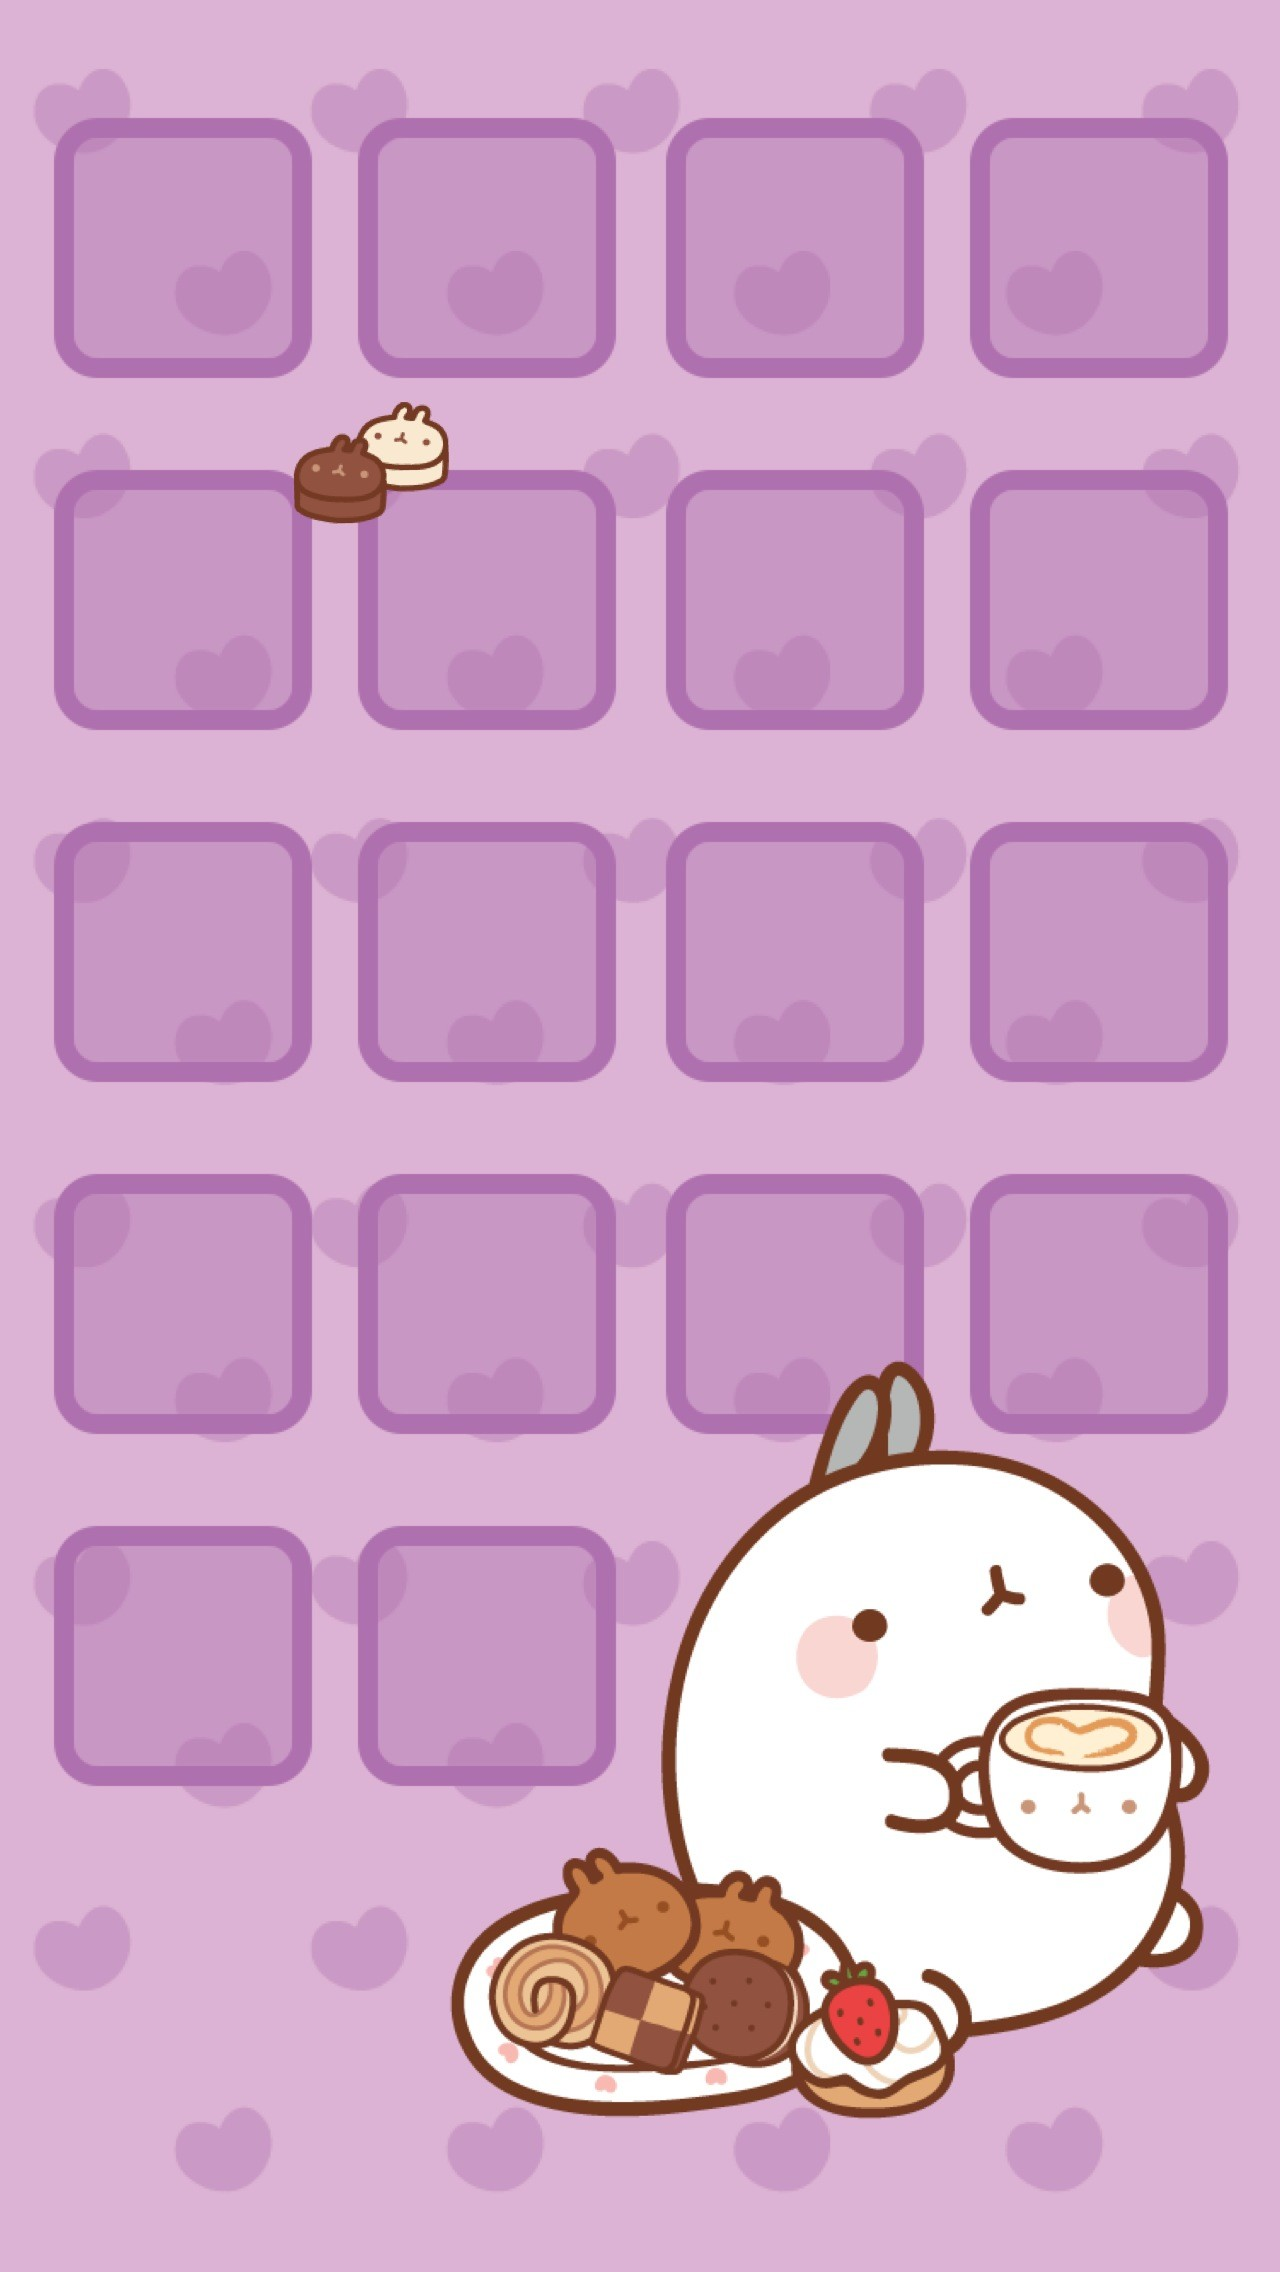 kawaii wallpapers iphone cute purple screen girly background cool wiki adorable backgrounds lock zone para halloween phone organizar 귀여운 getwallpapers